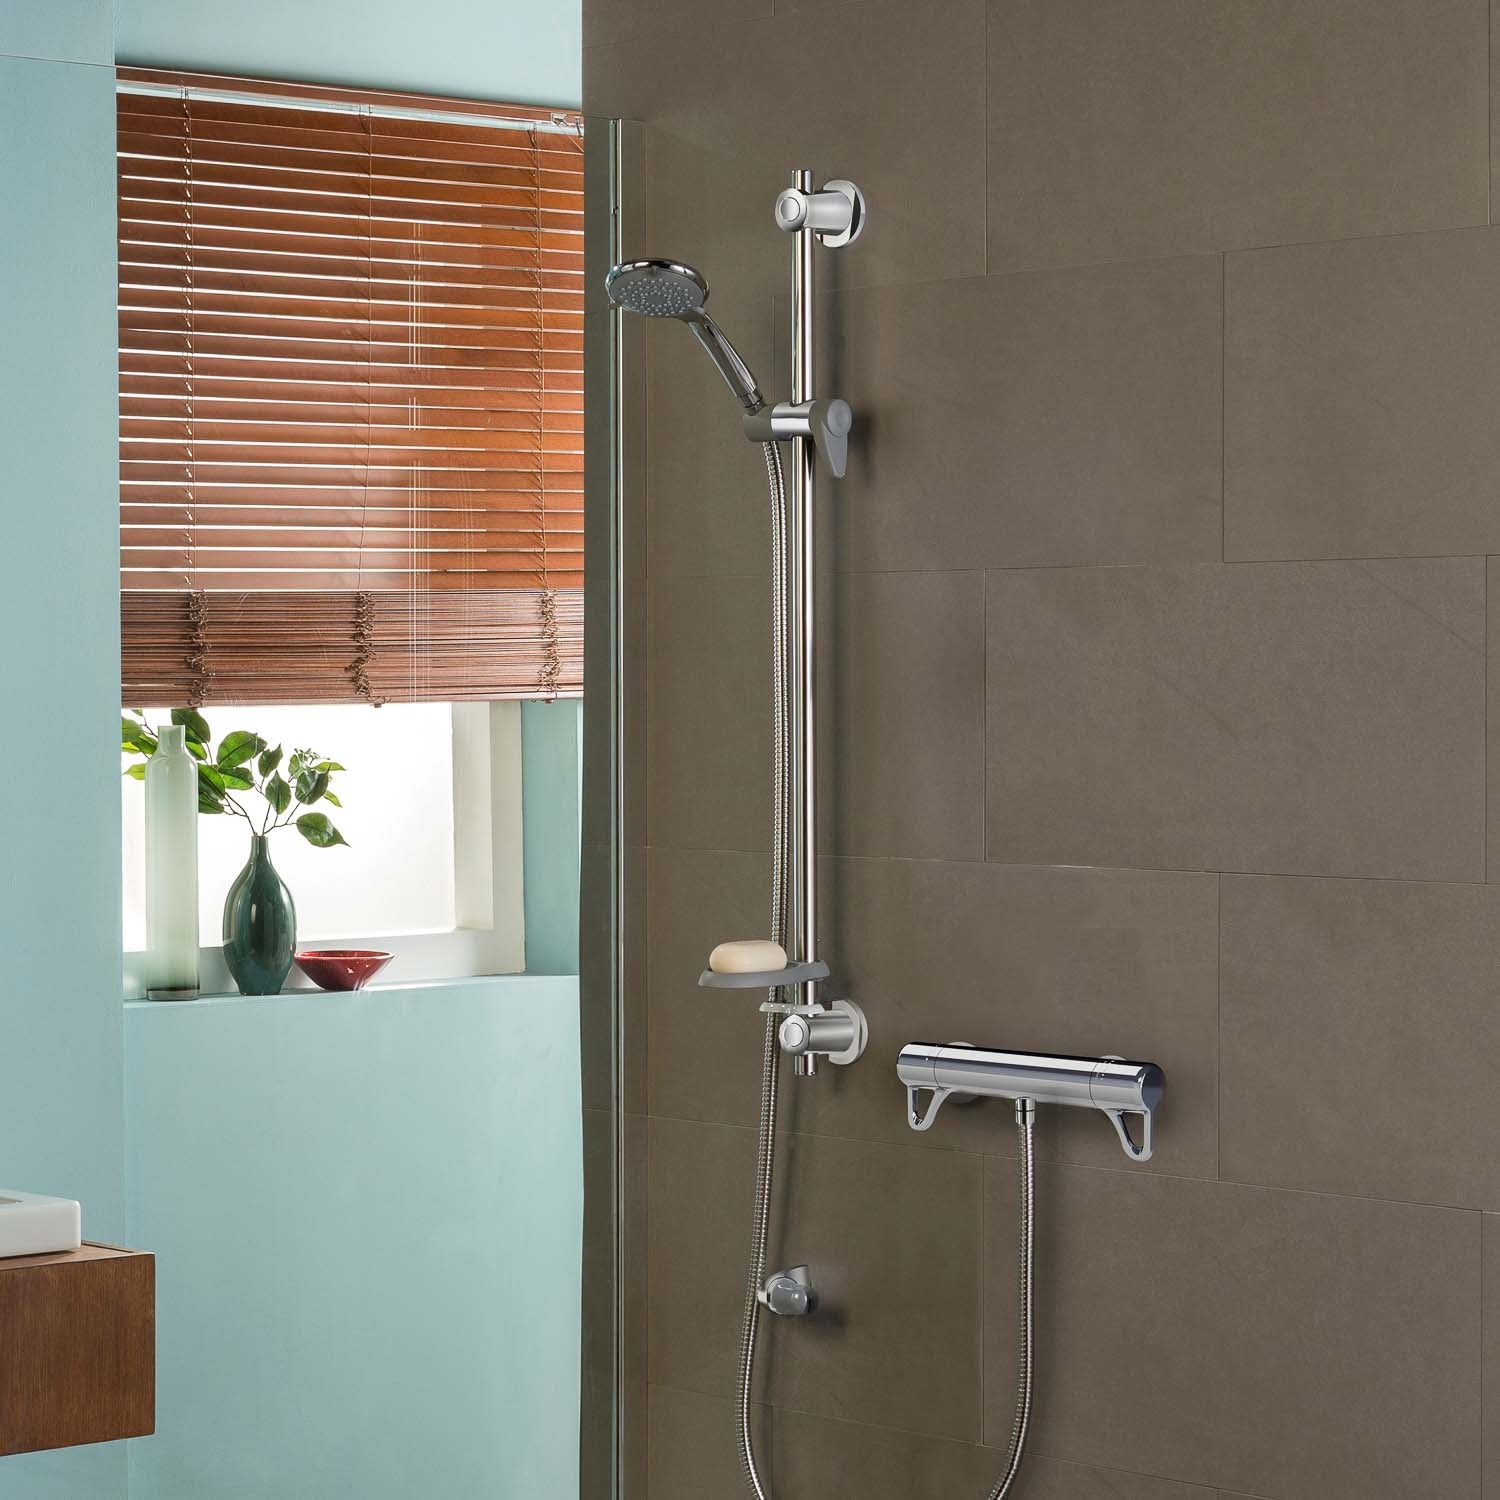 940mm Modale Supportive Shower Rail Kit with a chrome finish with a chrome finish lifestyle image